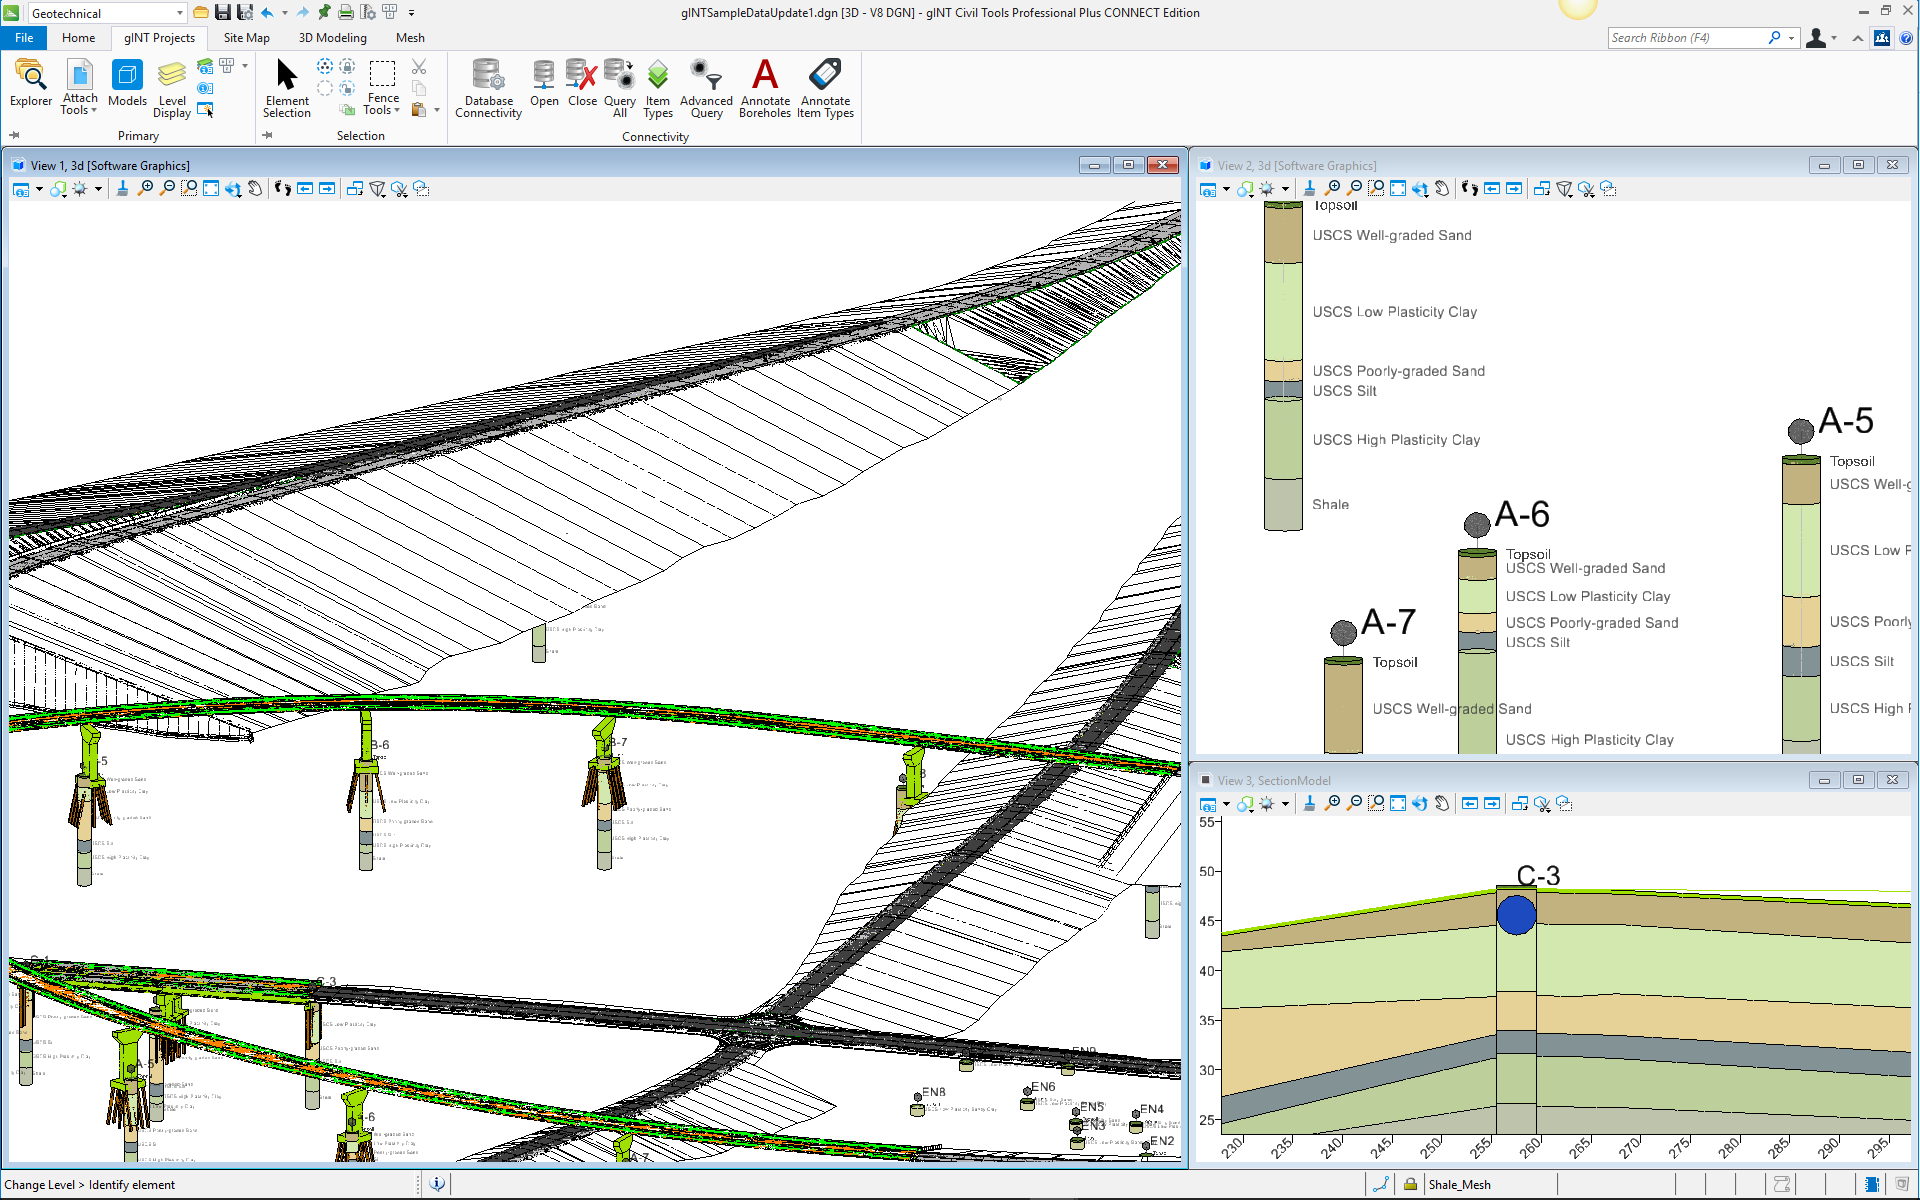 Geotechnical Subsurface Data 3D